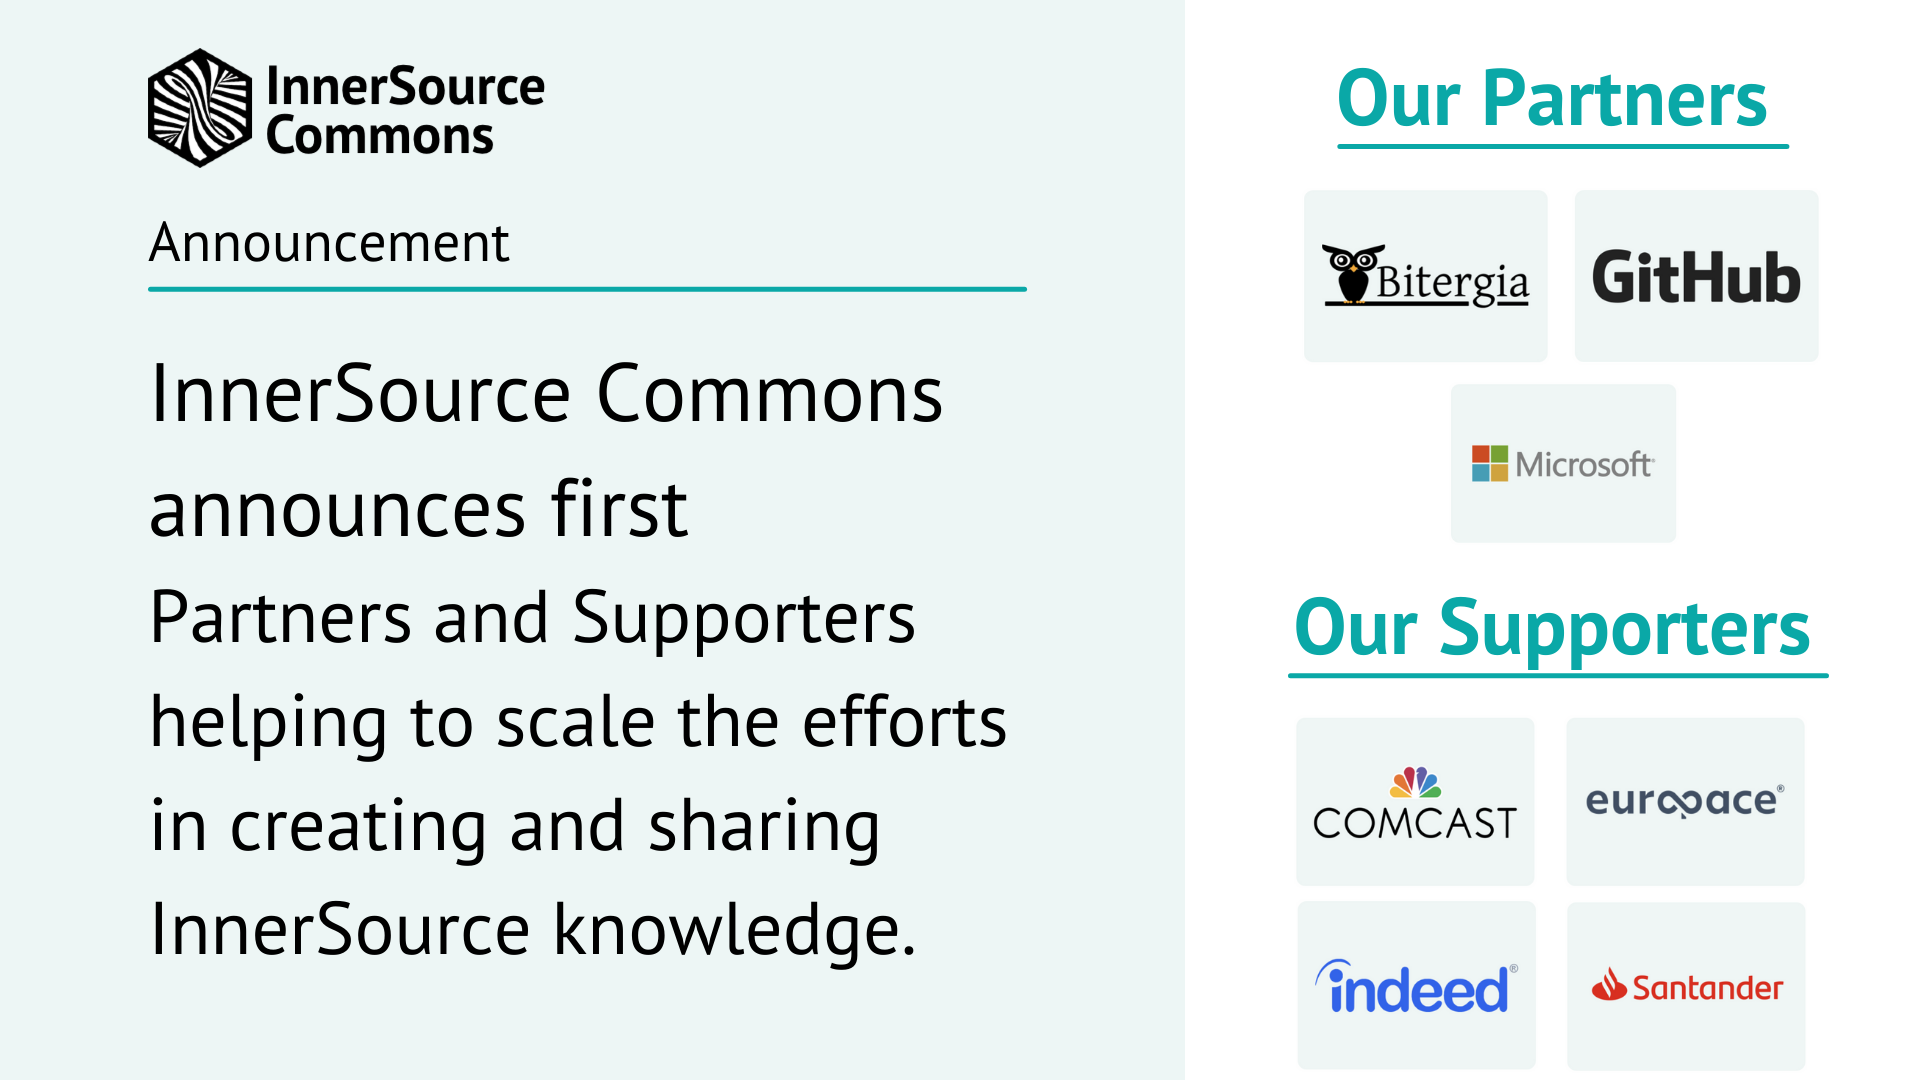 InnerSource Commons announces first Partners and Supporters helping to scale the efforts in creating and sharing InnerSource knowledge